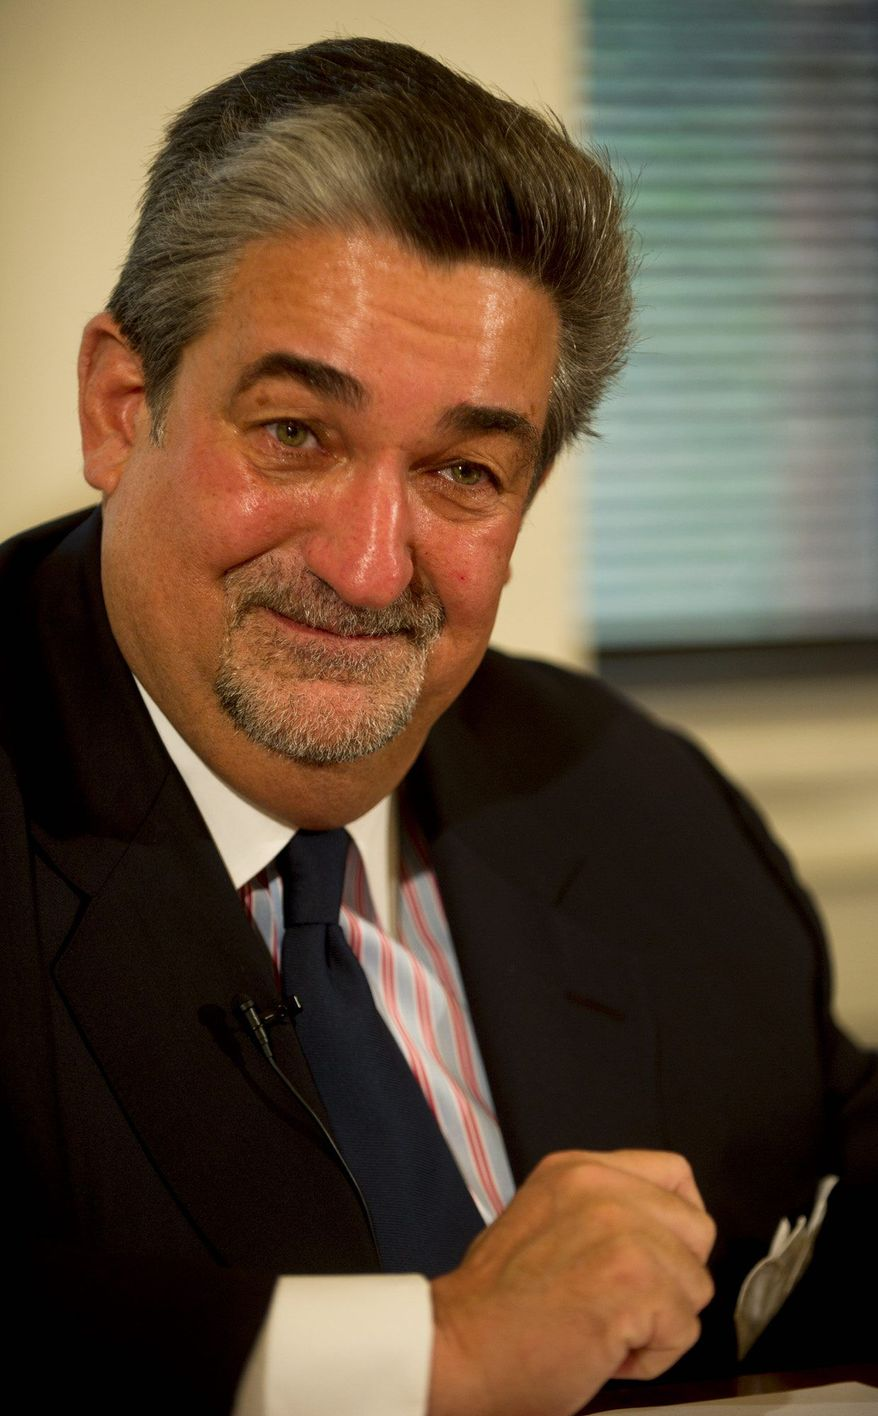 Ted Leonsis, owner of the Washington Wizards and the Washington Capitals, fields questions Friday during an editorial board meeting at The Washington Times' office. (Rod Lamkey Jr./The Washington Times)